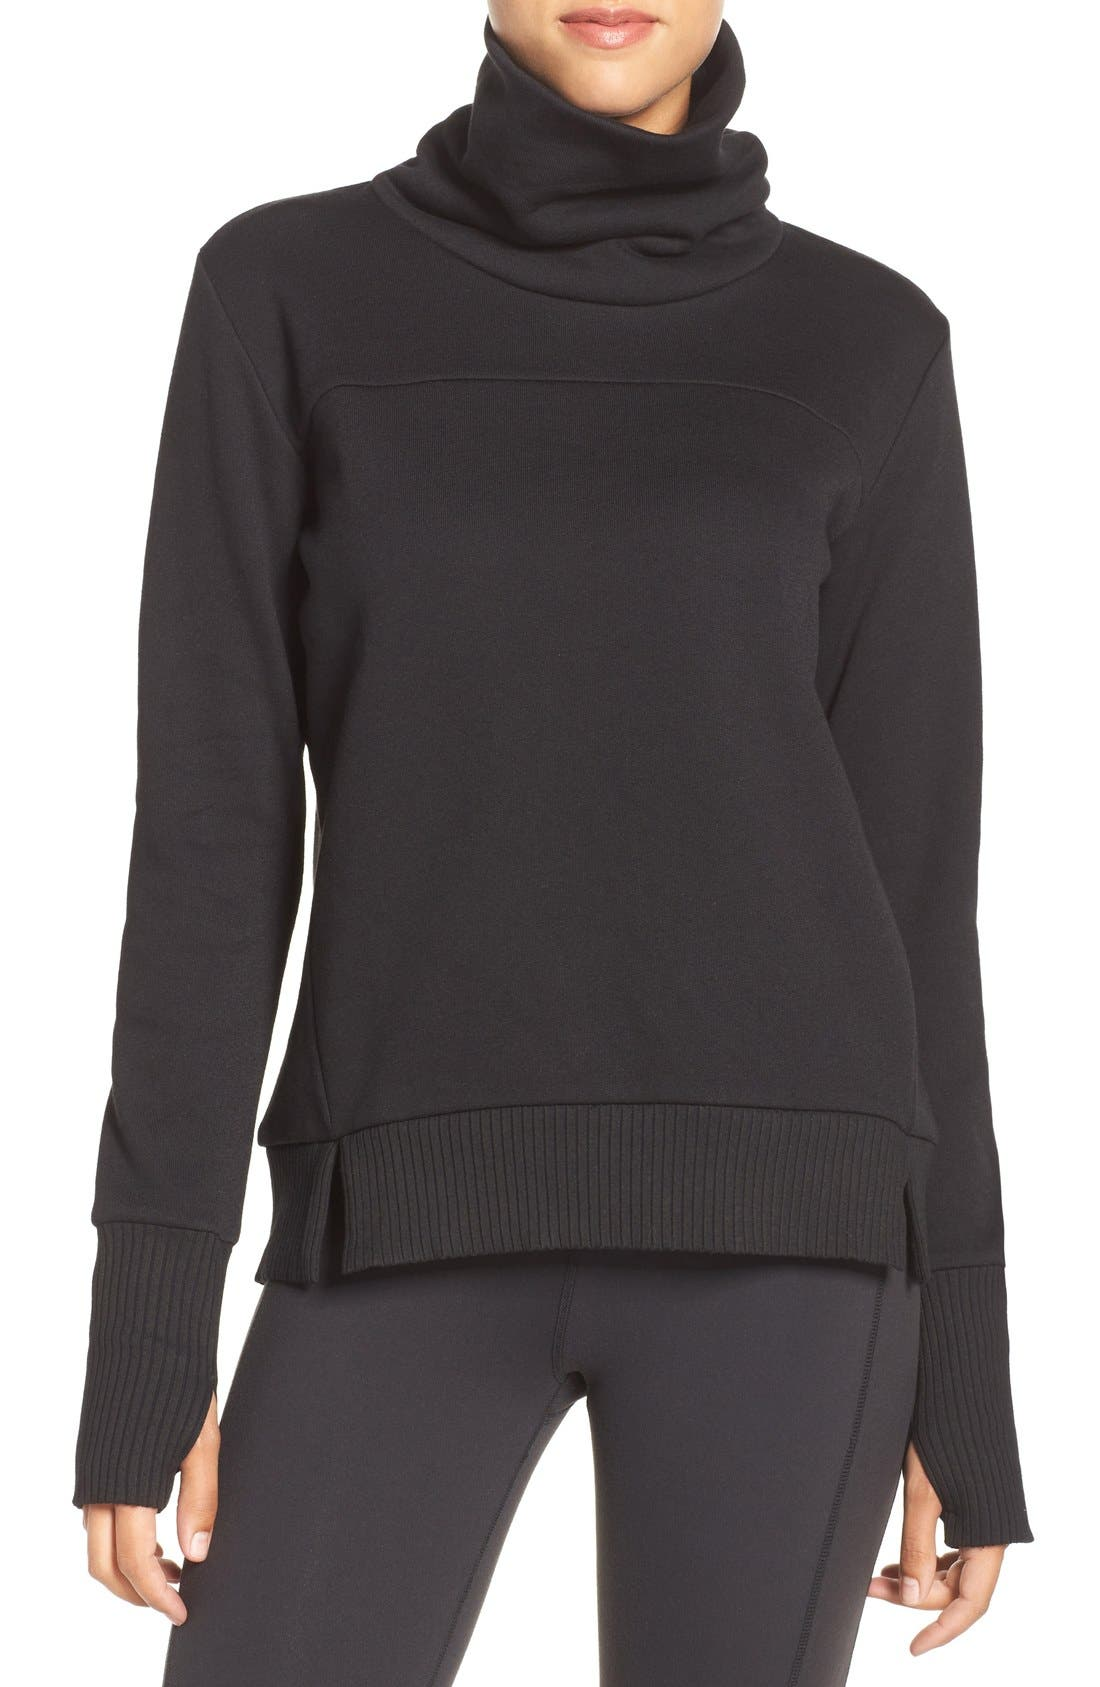 Alo \u0027Haze\u0027 Funnel Neck Sweatshirt